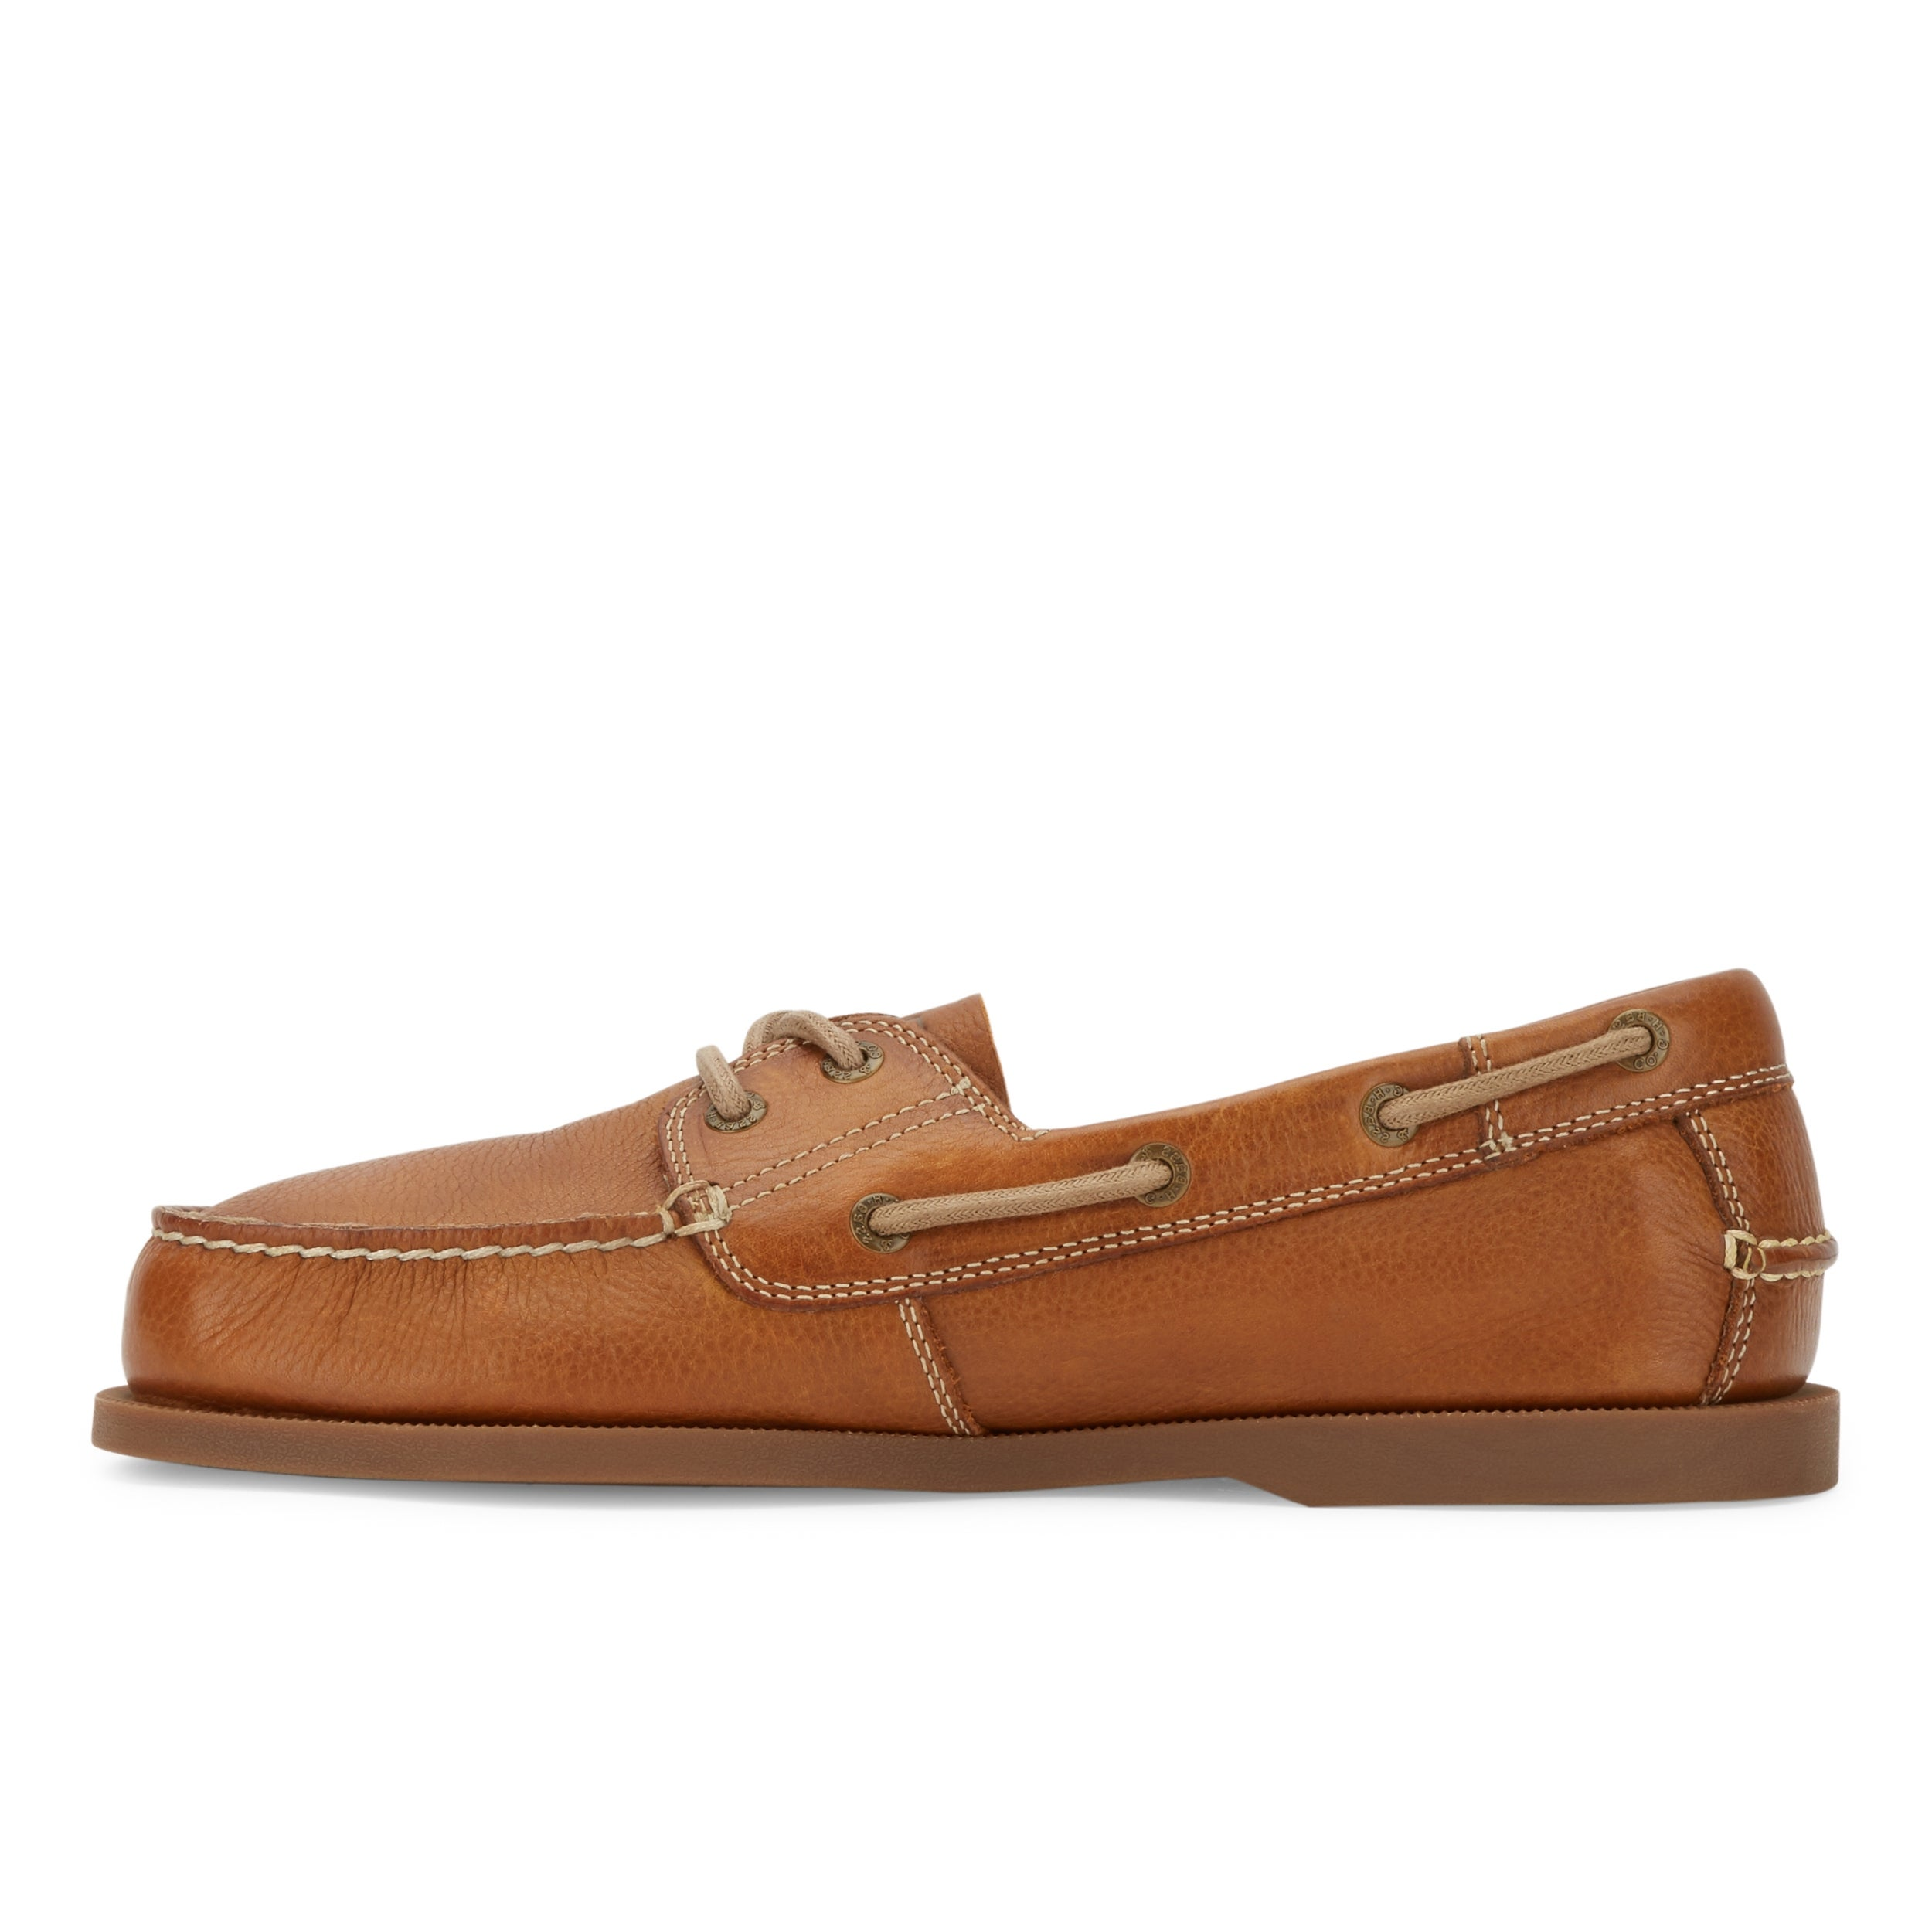 cefdfcaf7bd1 Mens Asbury Classic Leather Boat Shoe - Free Shipping On Orders Over  45 -  Overstock - 22538610